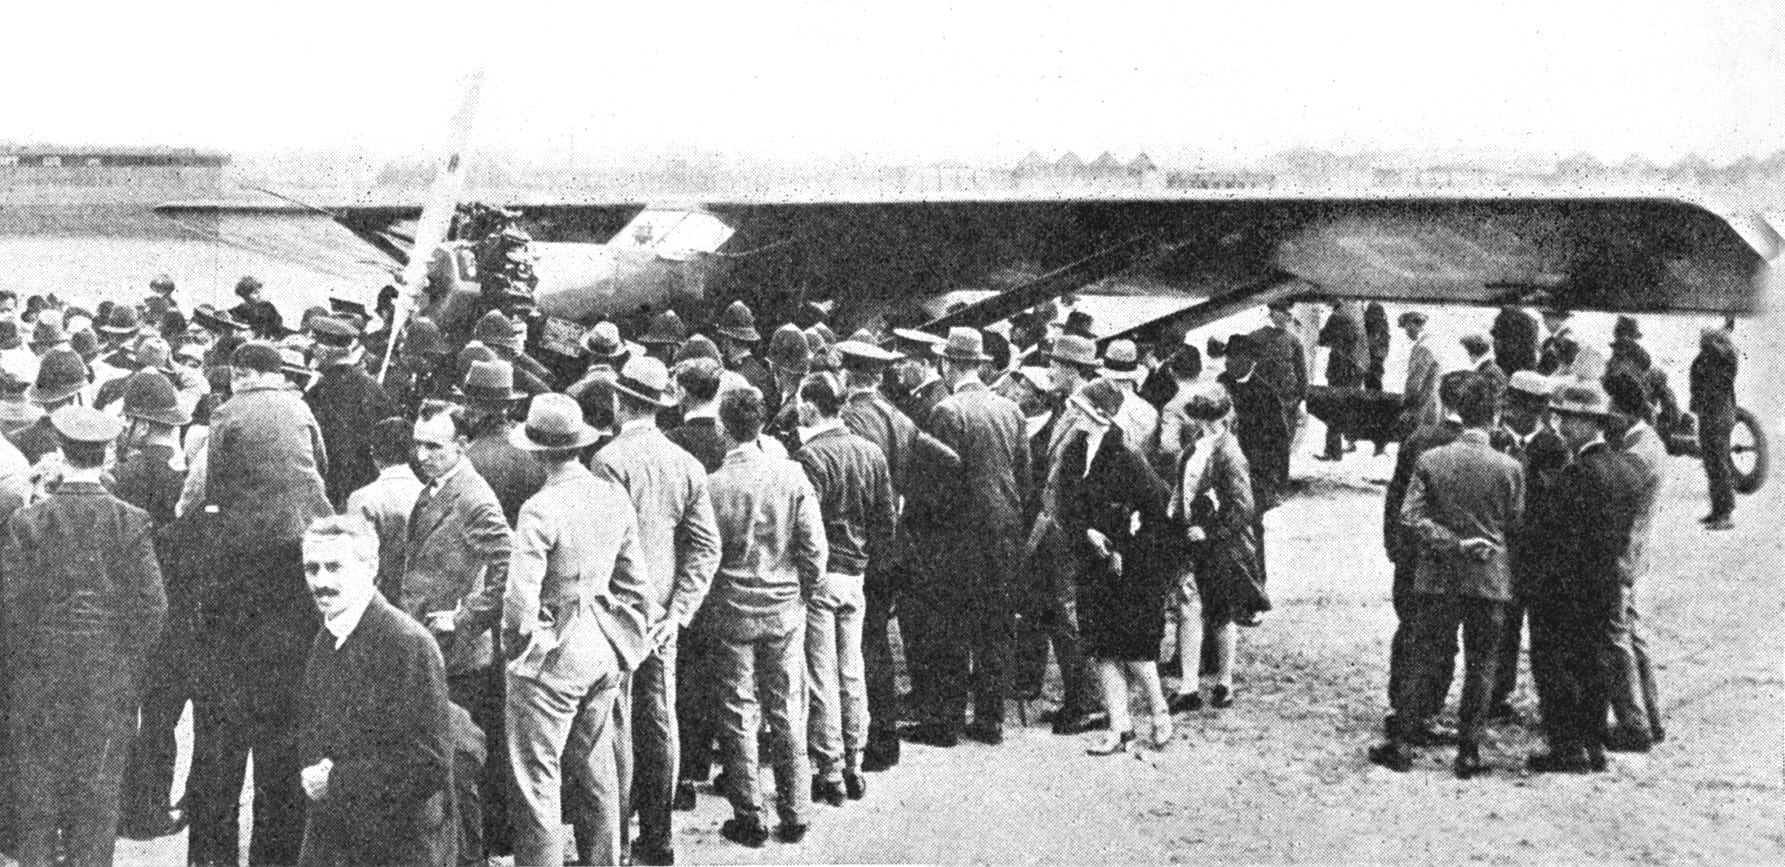 Brock and Schlee's Stinson drew a large crowd upon arrival in Europe at the Croydon Airport outside of London. Source: Dennis Parks